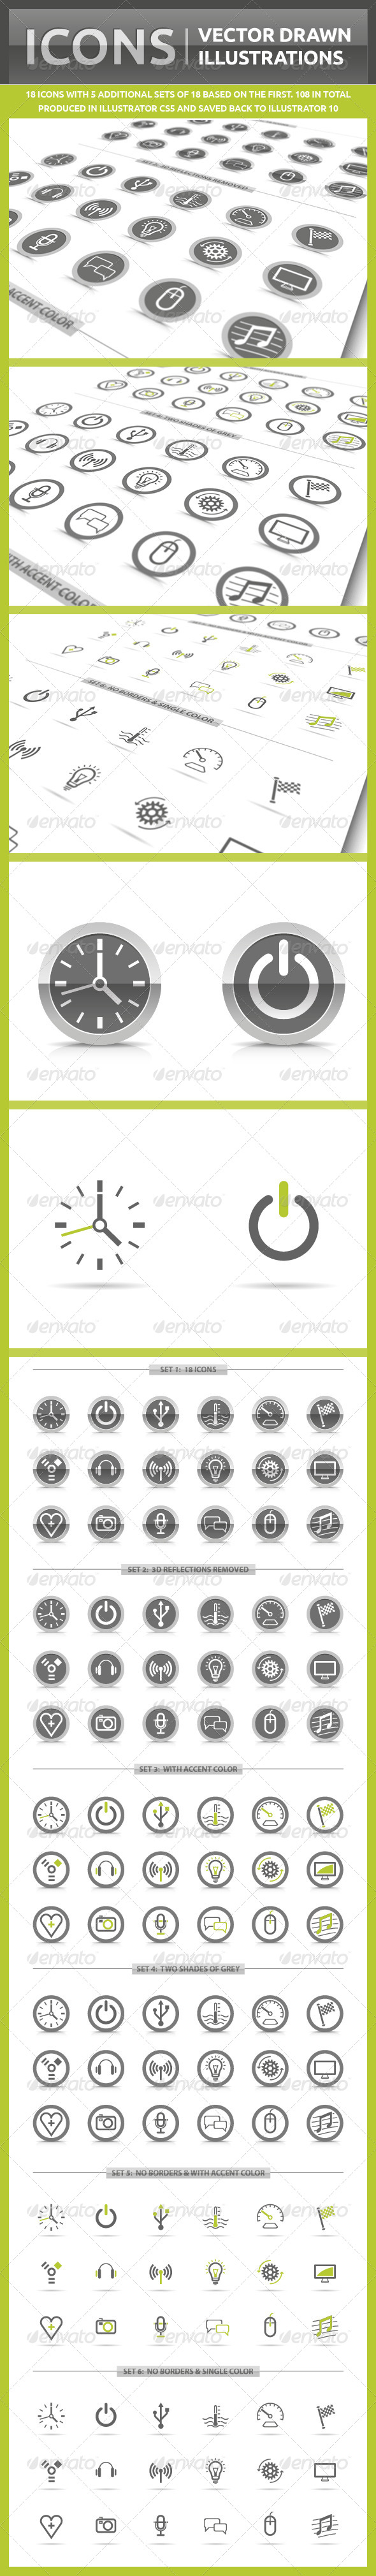 GraphicRiver Icons Vector Drawn Illustrations 5101620